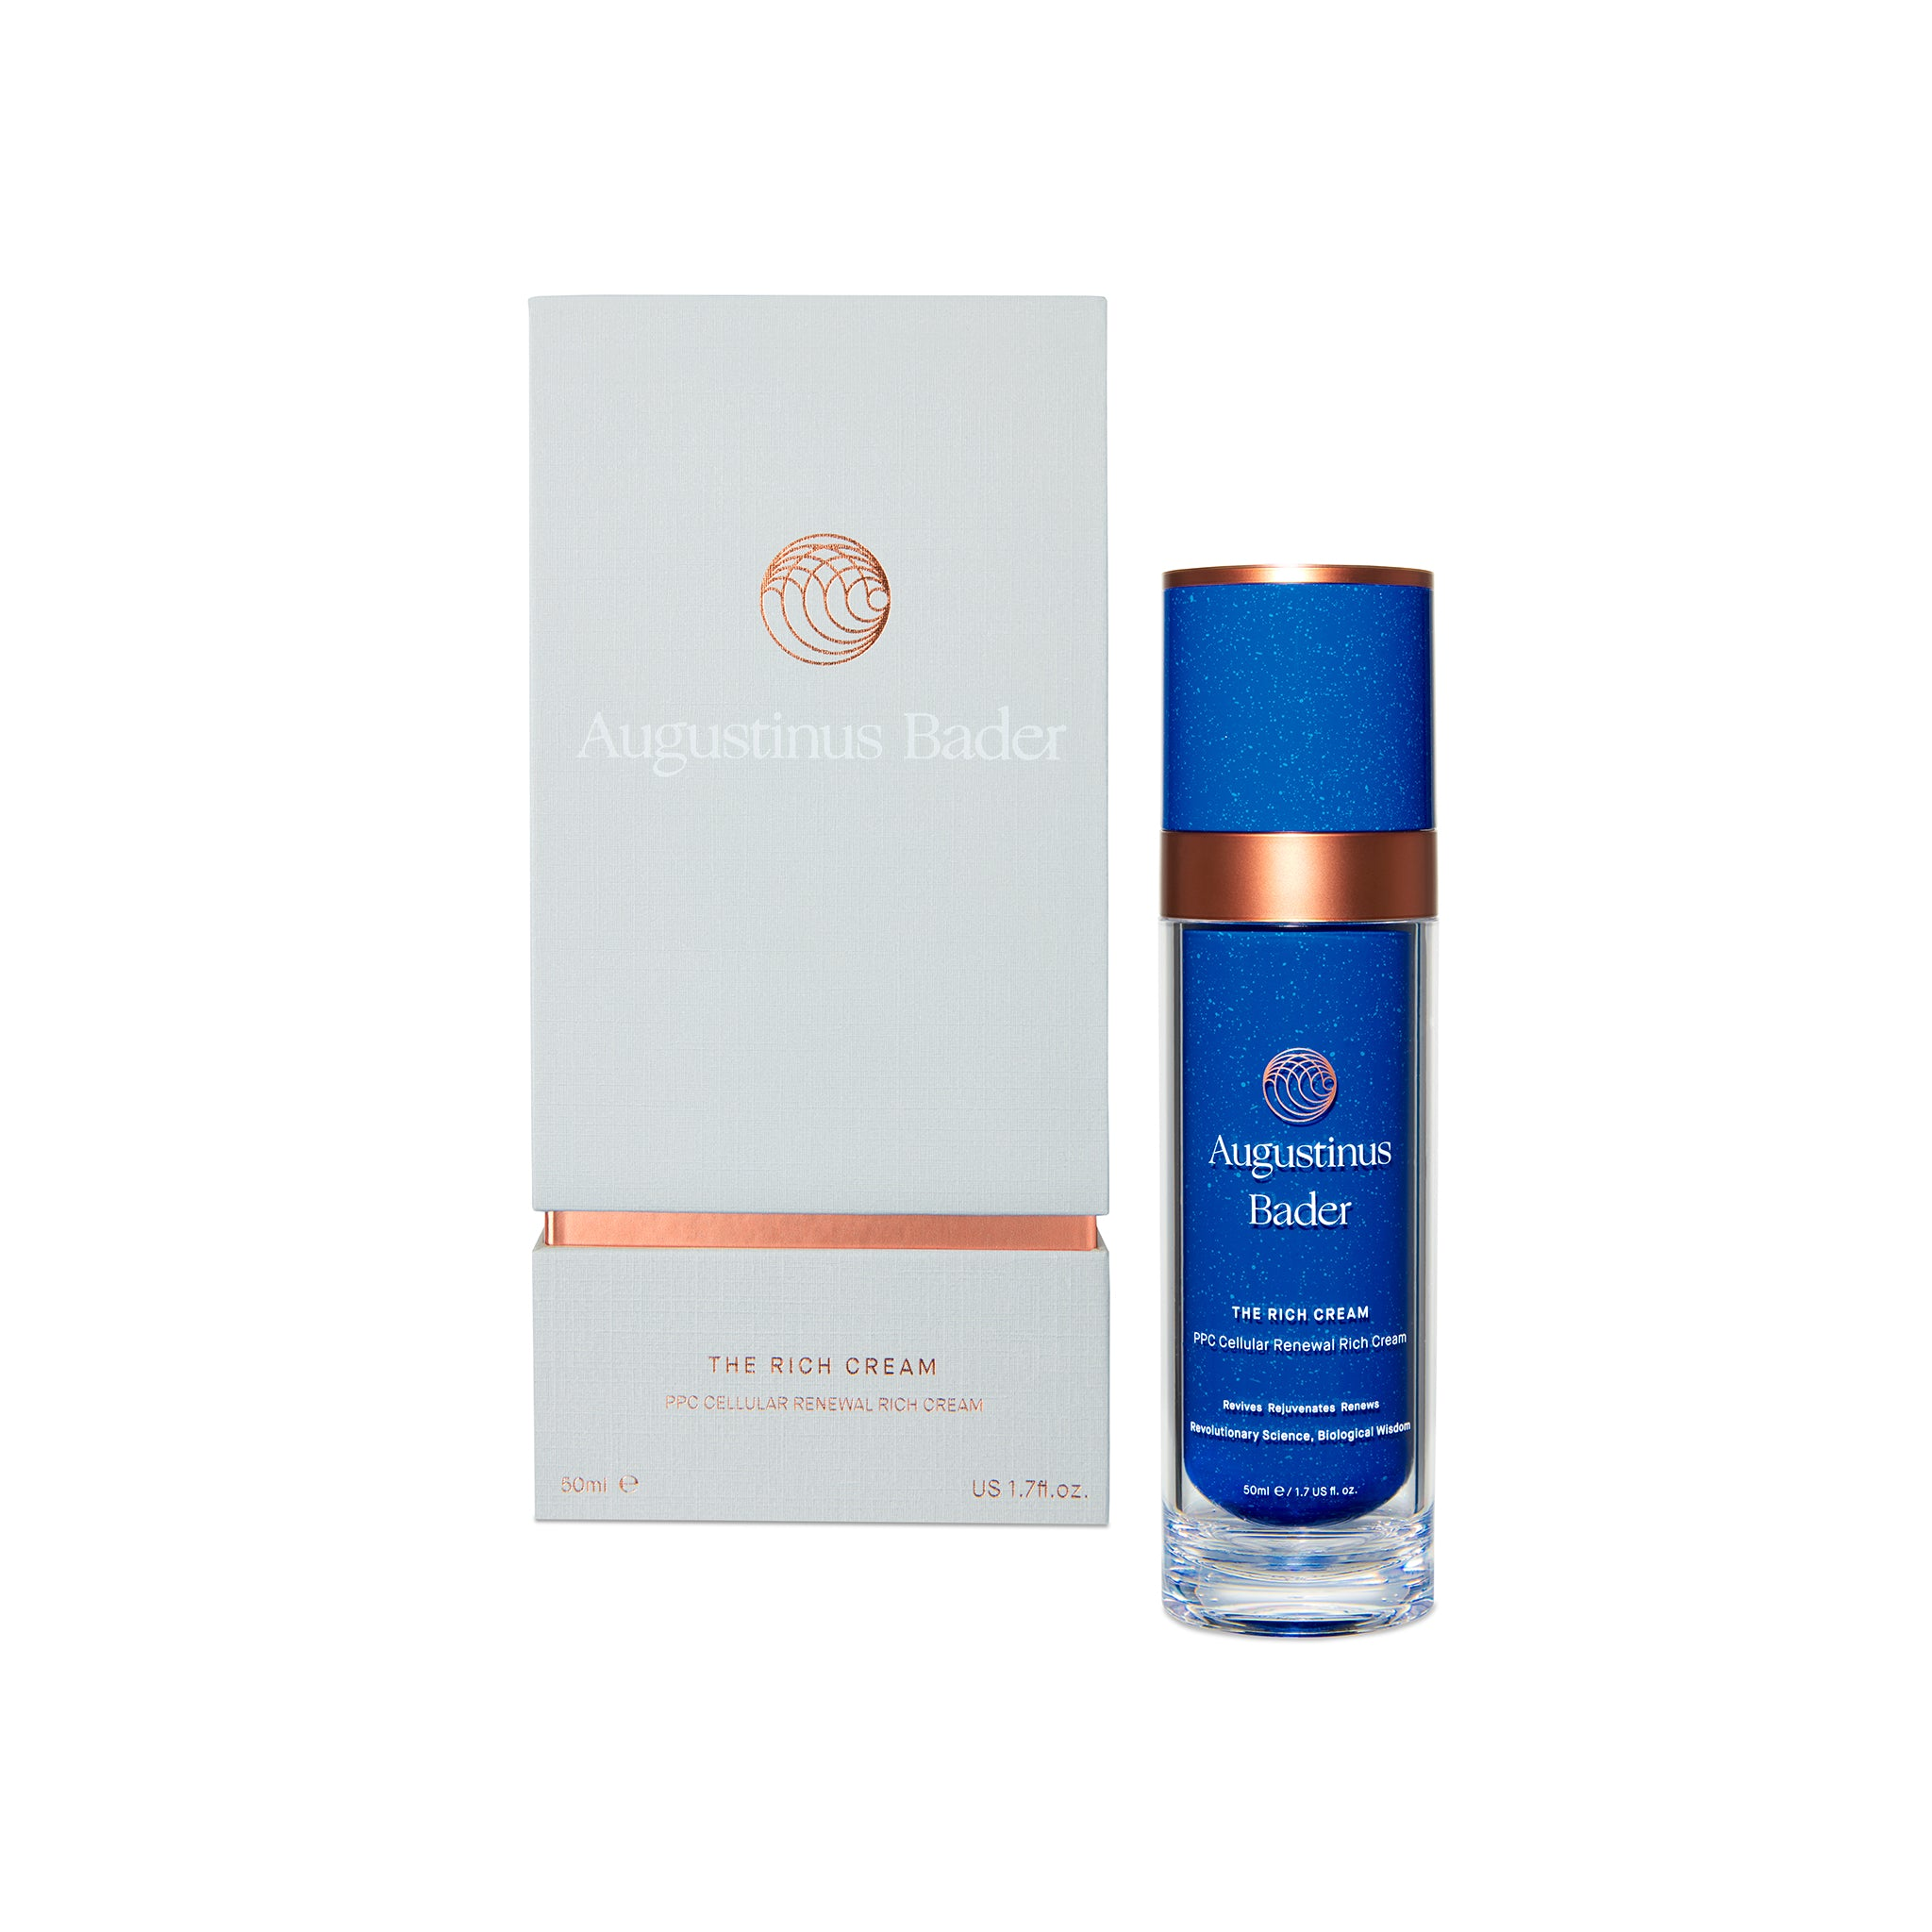 mathilde-gohler - Pre Sale - The Rich Cream - 50 ml - Augustinus Bader - Augustinus Bader